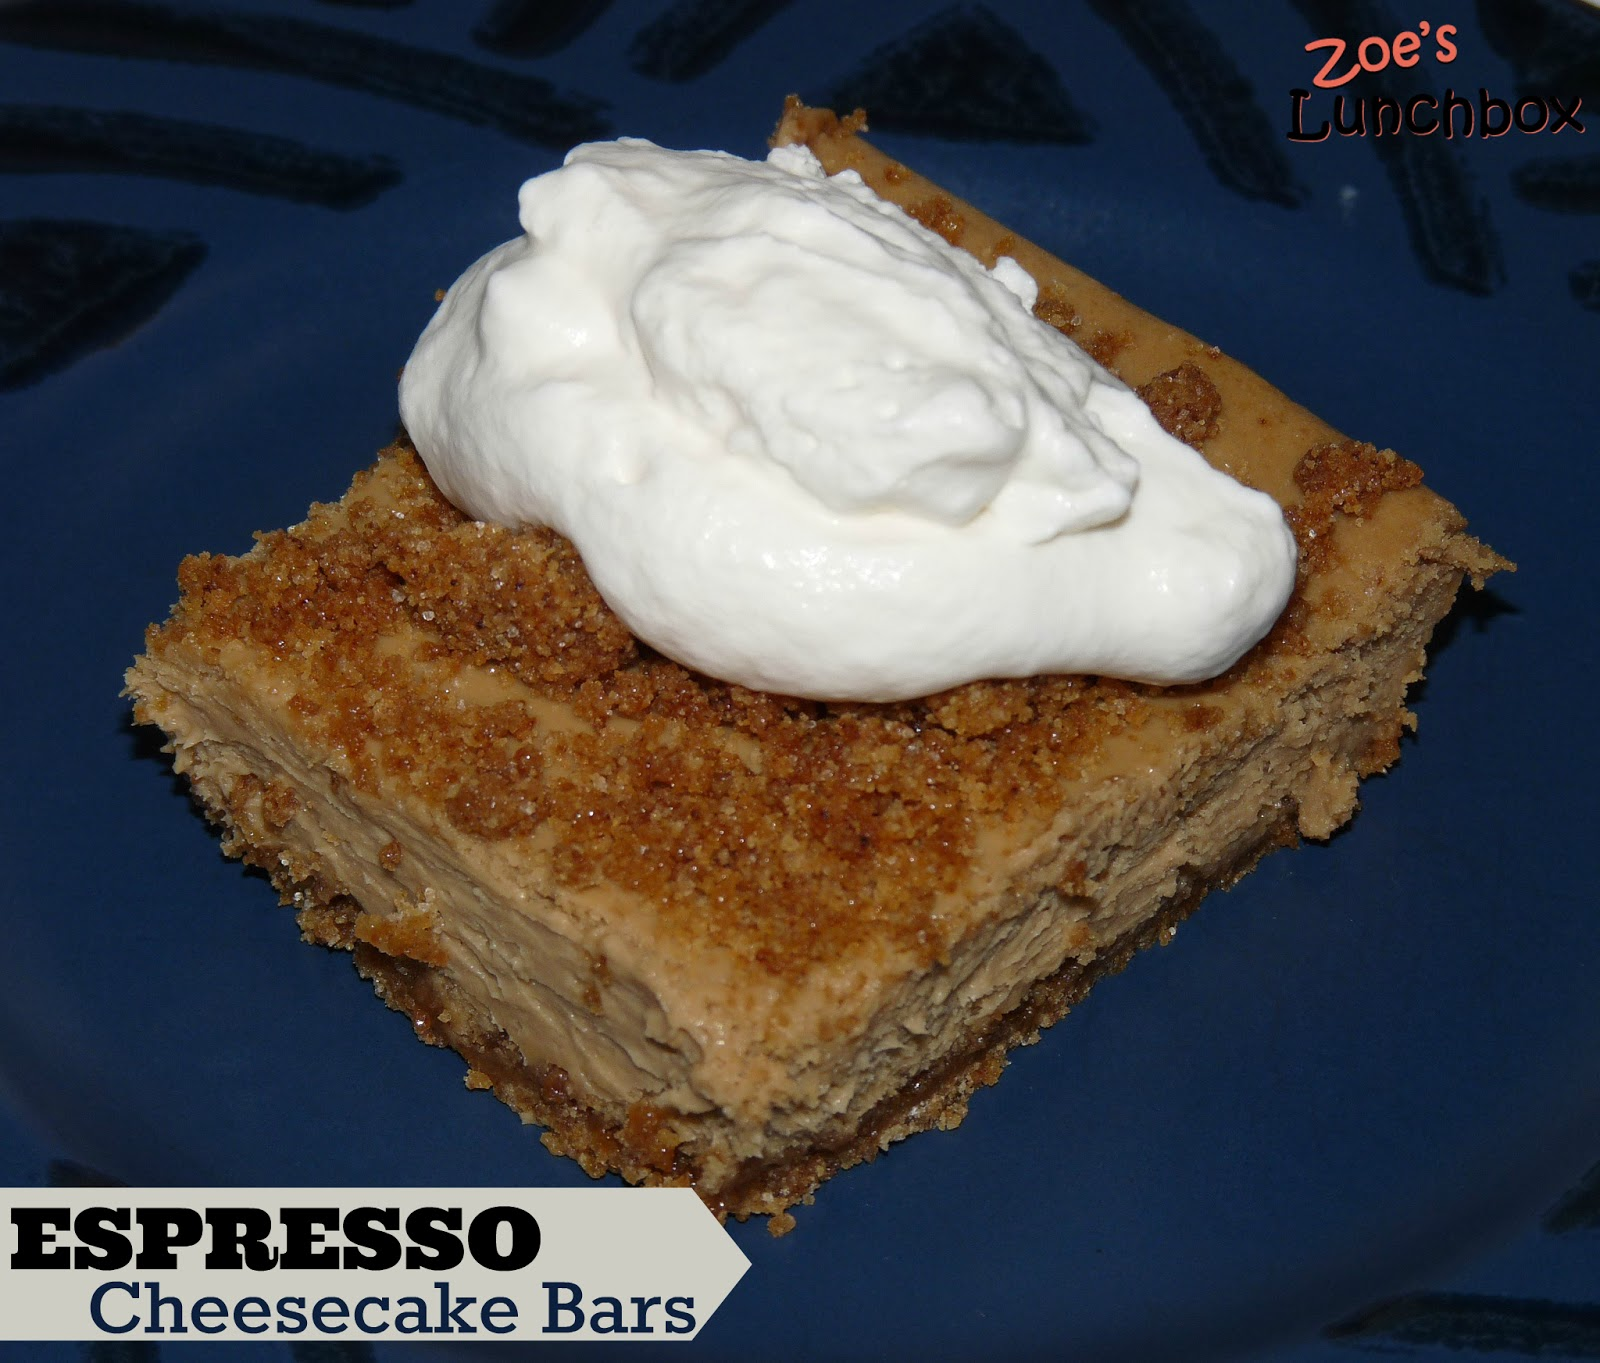 Espresso Cheesecake Bars